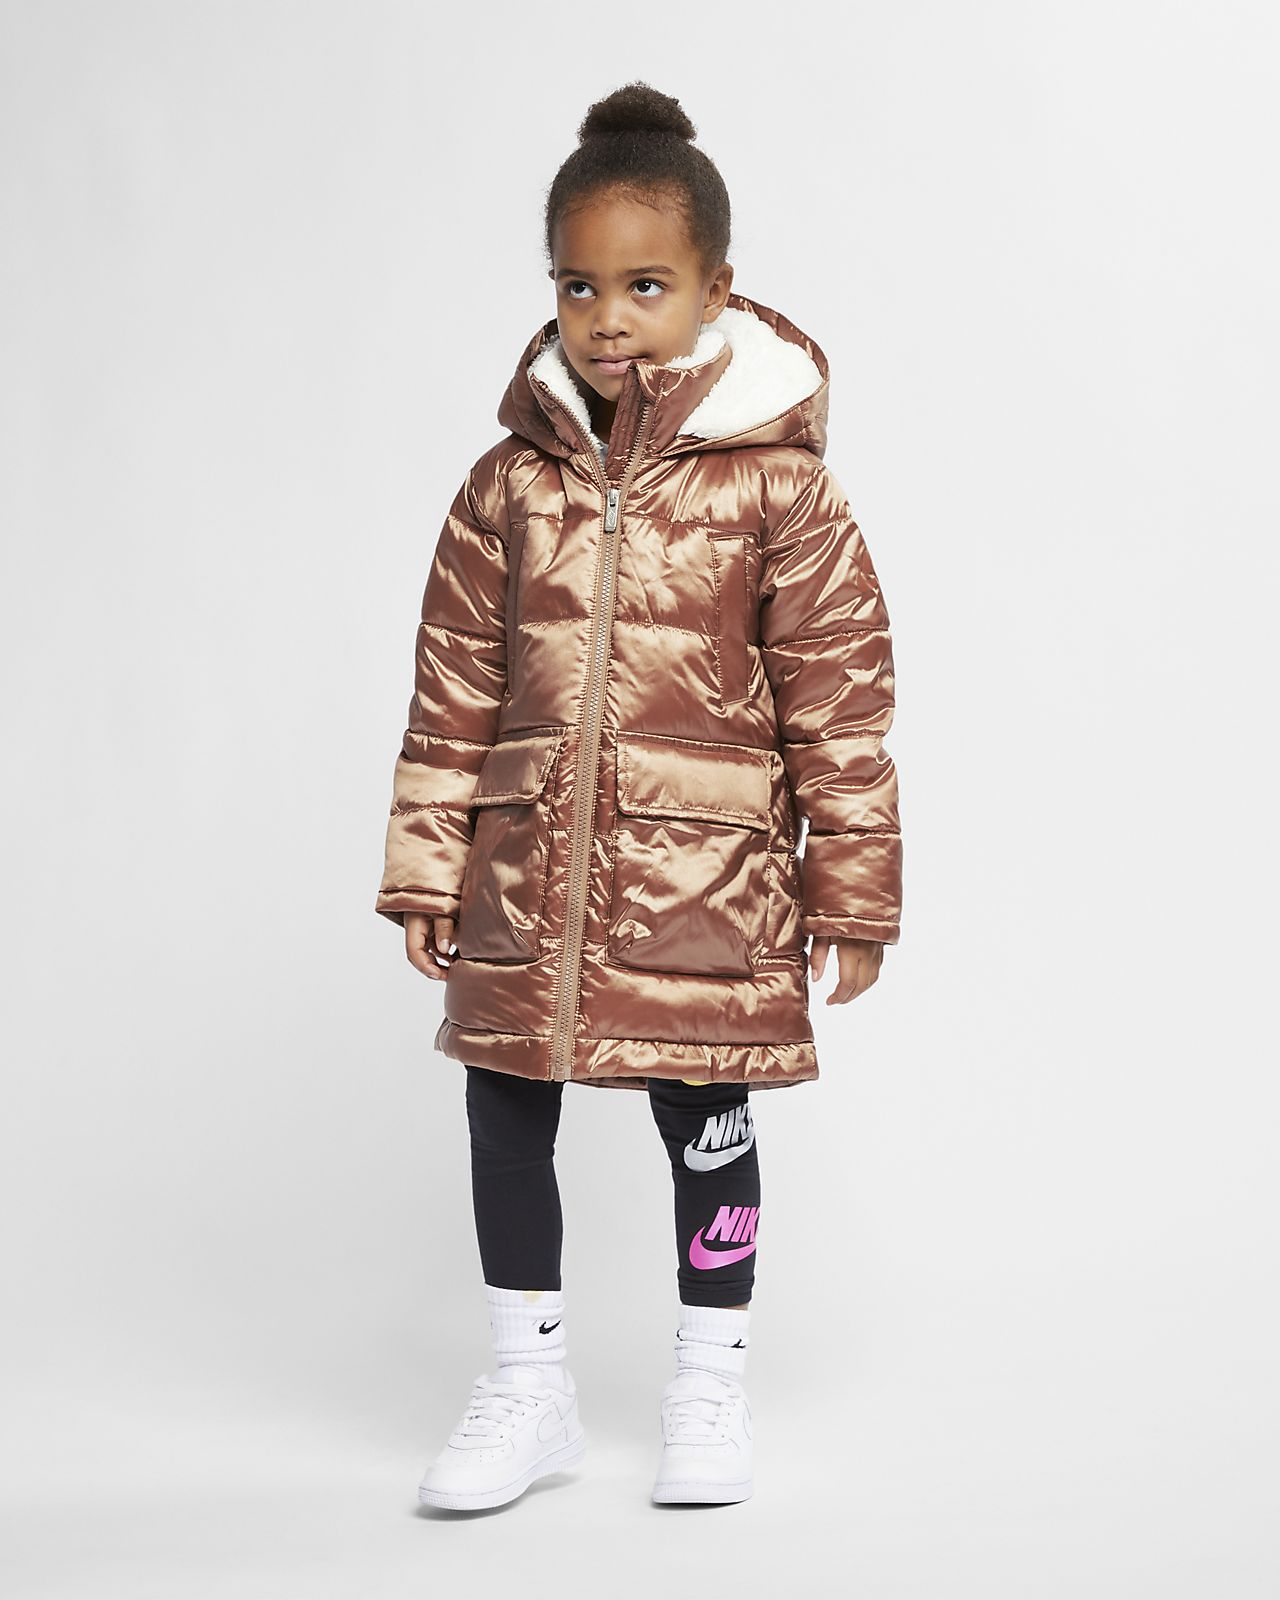 Nike Sportswear Little Kids' Parka